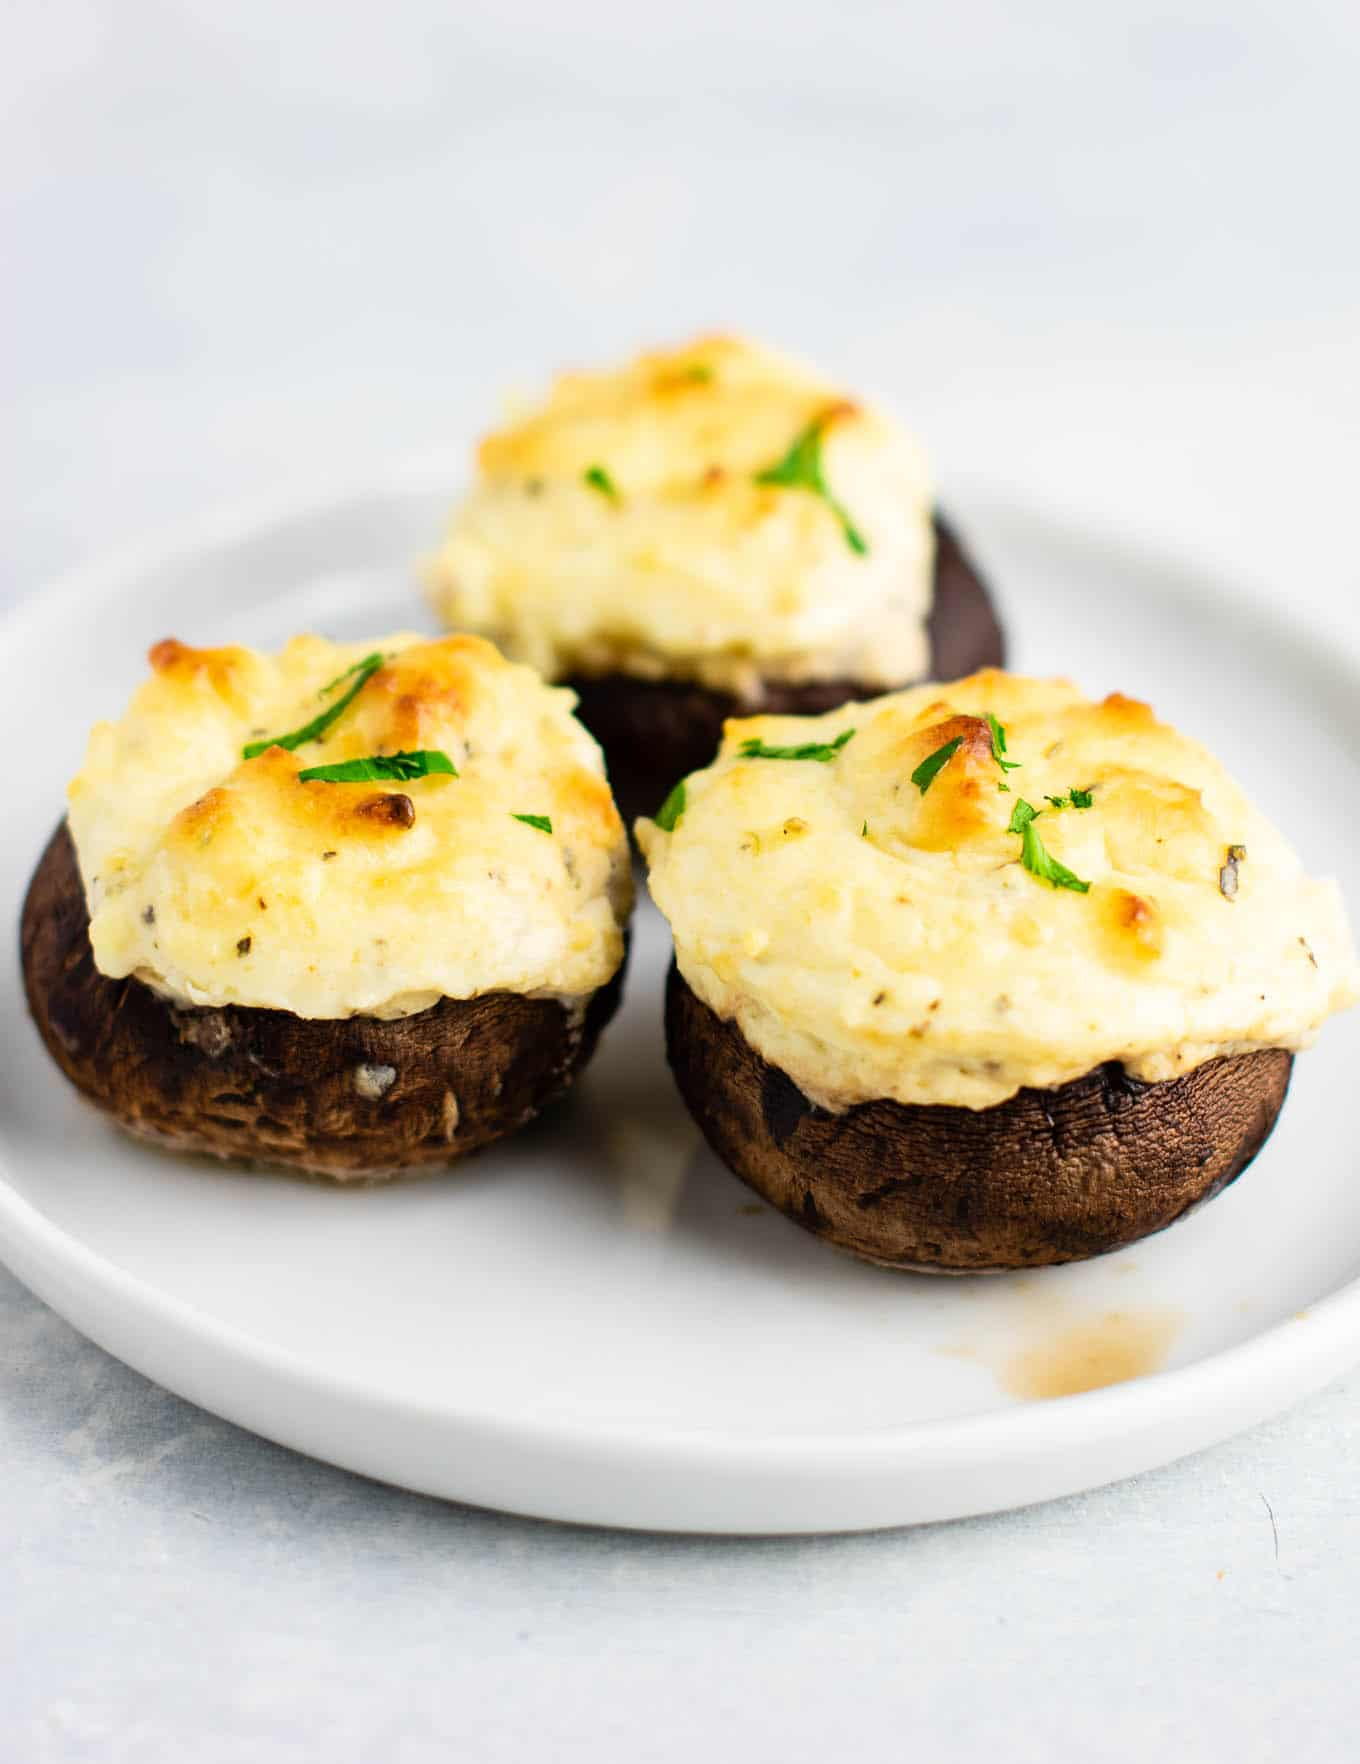 Easy Stuffed Portobello mushrooms with cream cheese and sour cream – a healthy vegetarian appetizer! (and low carb) #easyrecipe #creamcheese #vegetarian #appetizer #vegetarianappetizer #lowcarb #healthy #healthyrecipe #healthyappetizer